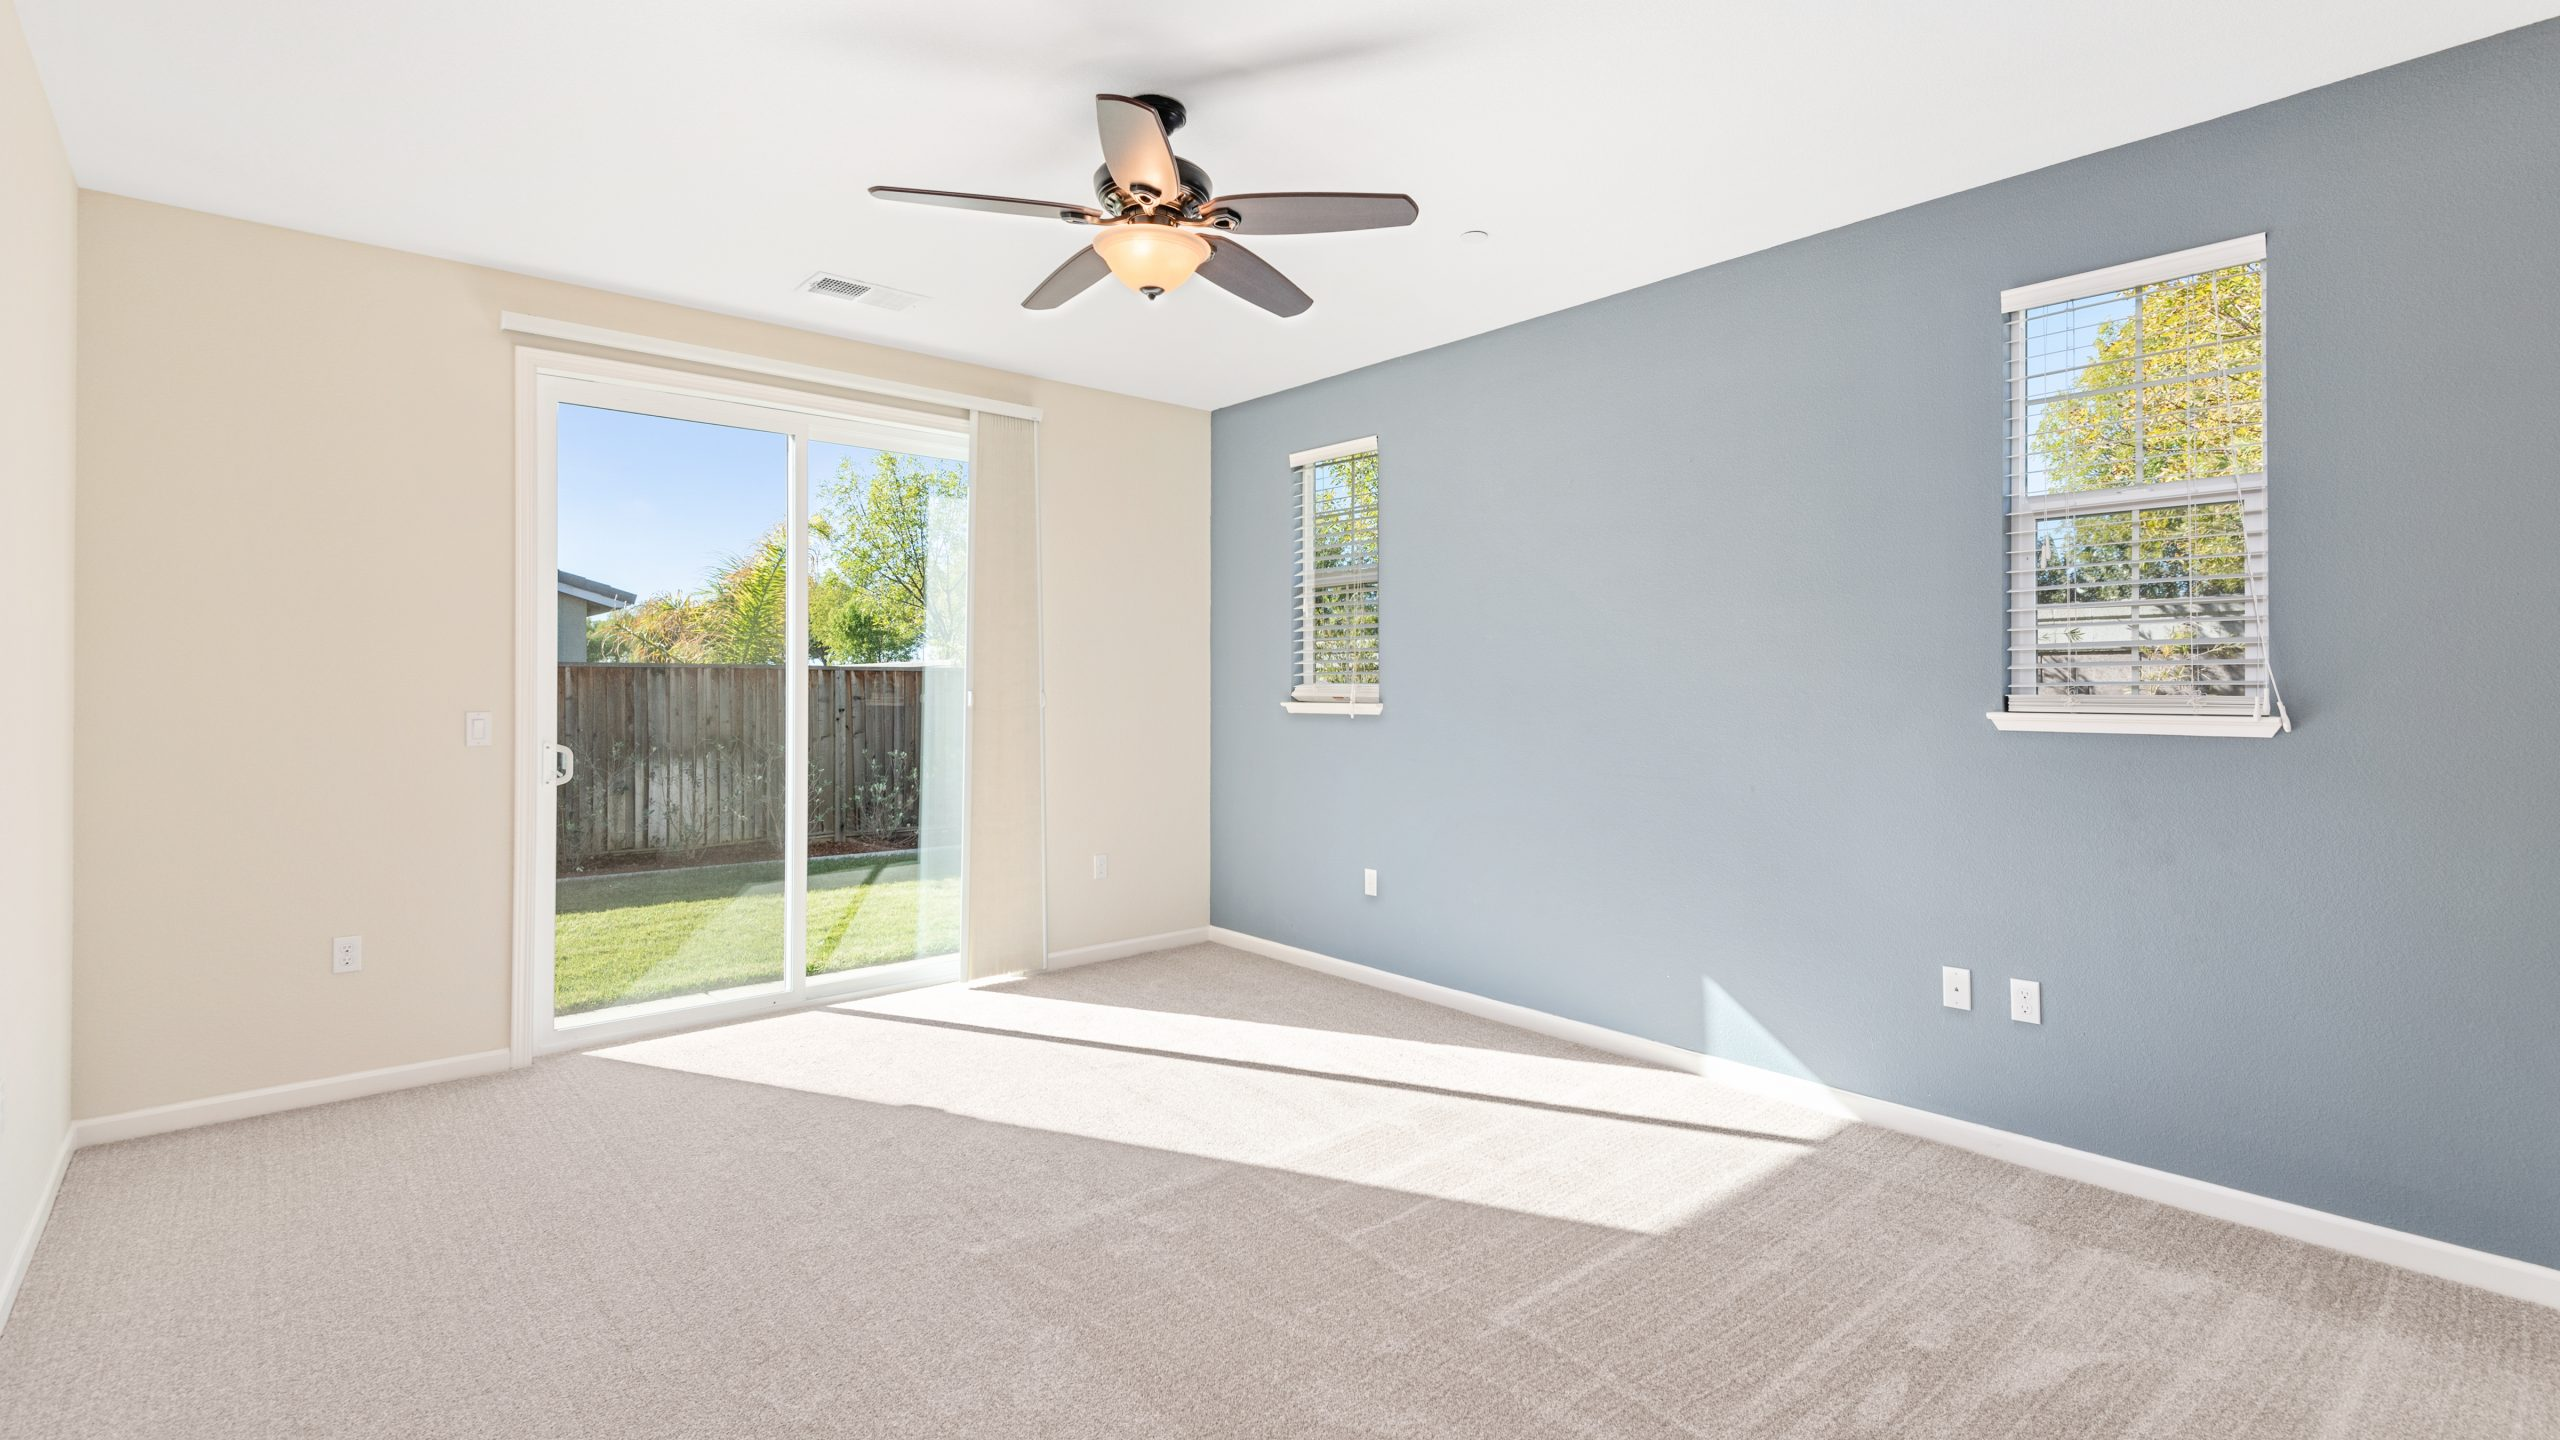 8373-Brookhaven-Circle-Discovery-Bay-17-of-42-1541610483